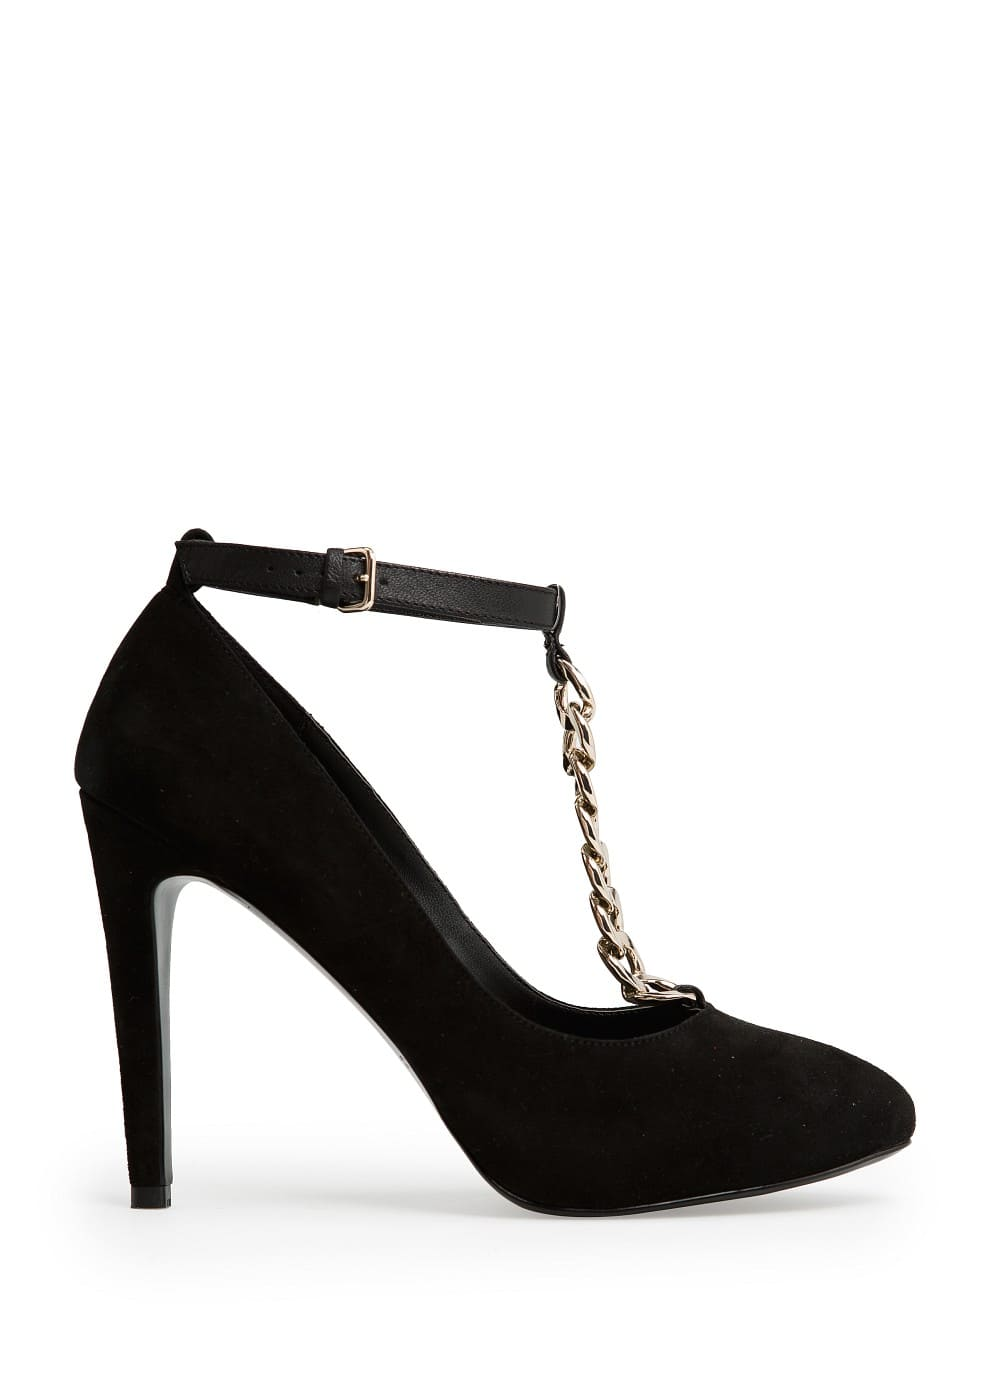 Suede chain shoes